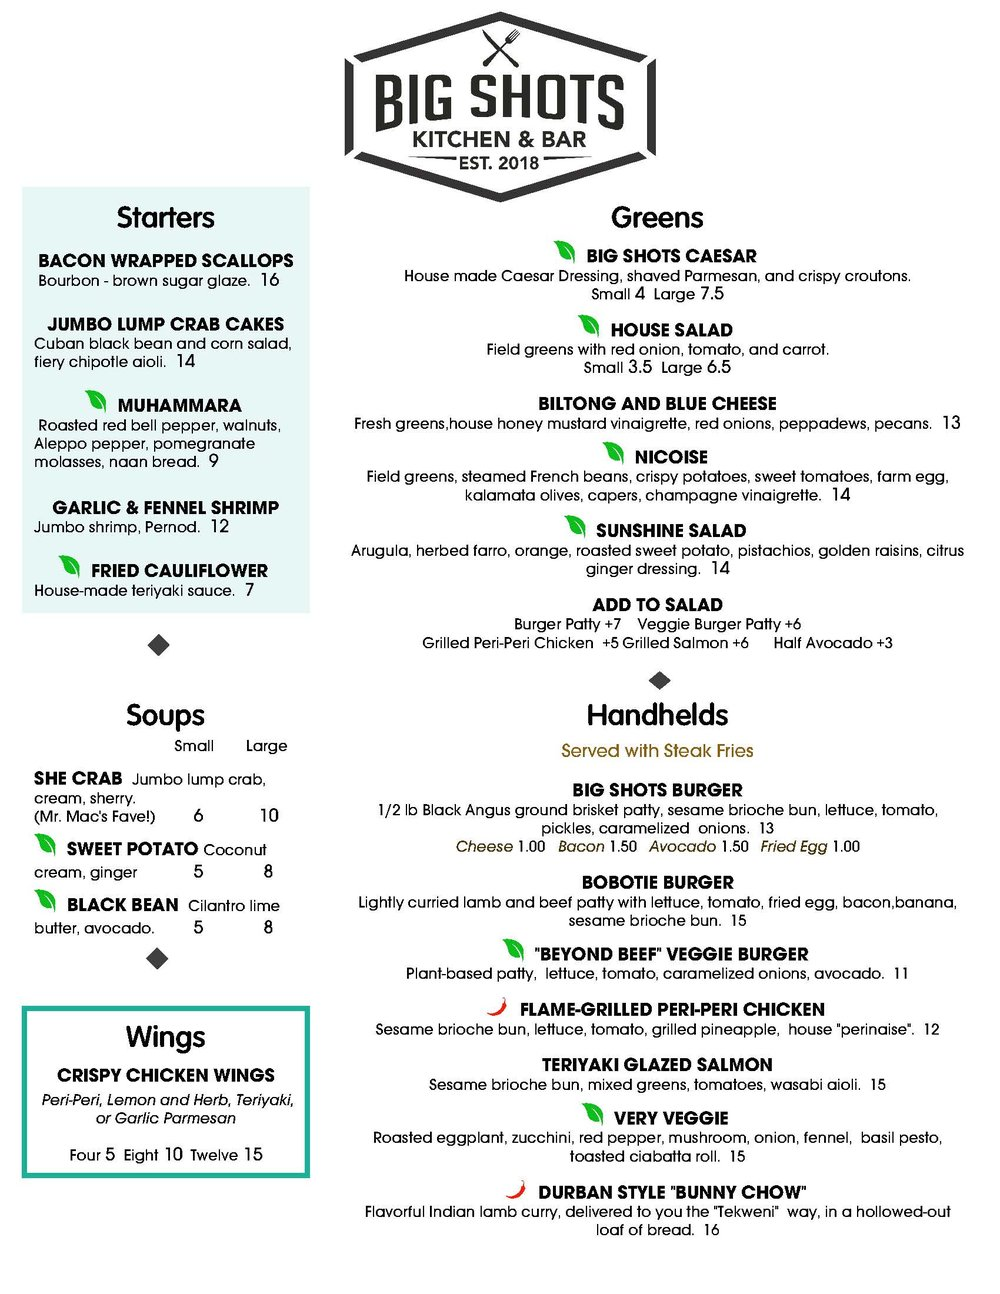 The Big Shots Menu Oct 5 2018_Page_1.jpg